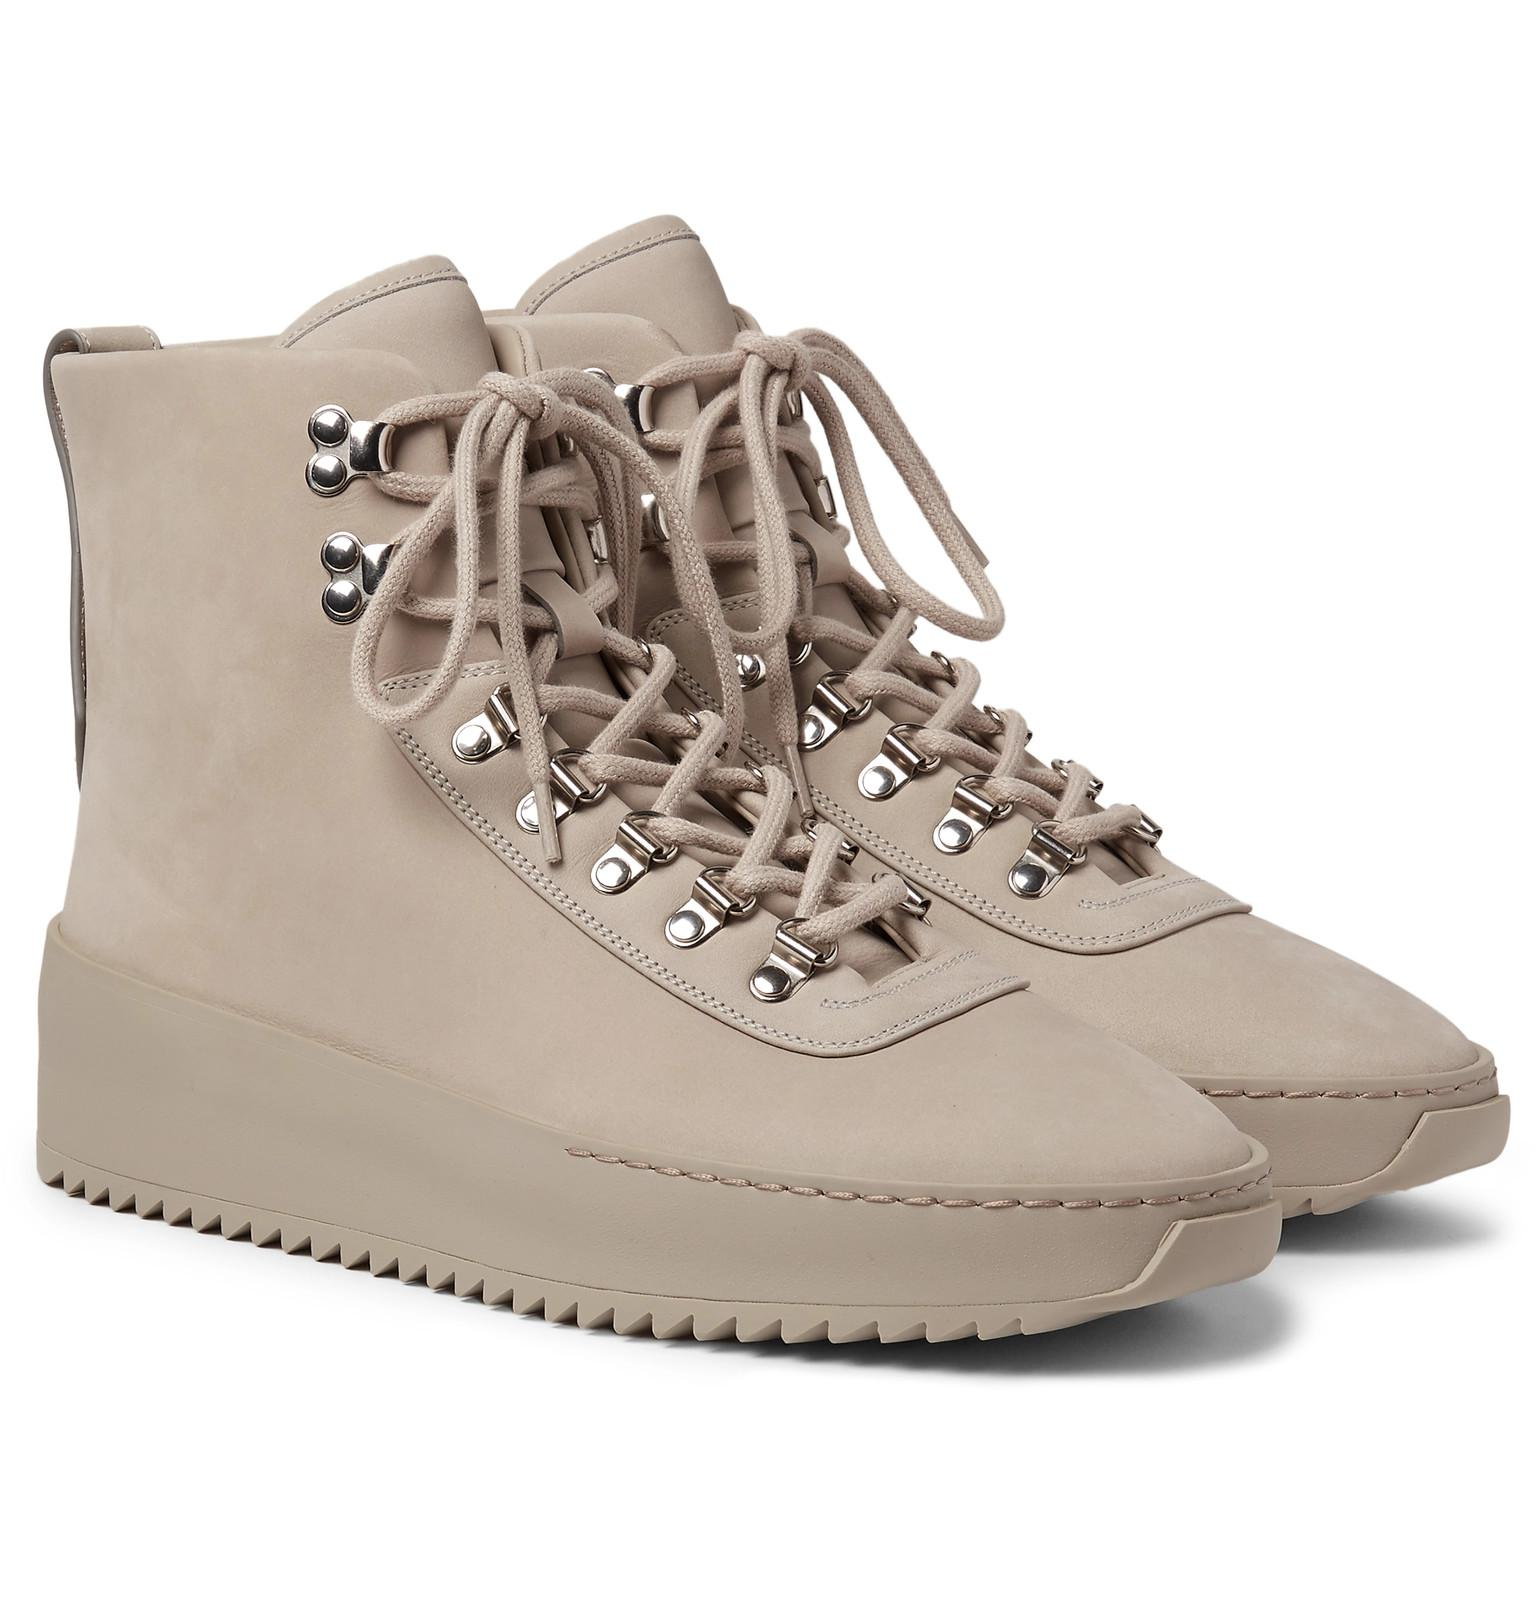 FEAR OF GOD Nubuck High Top Sneakers